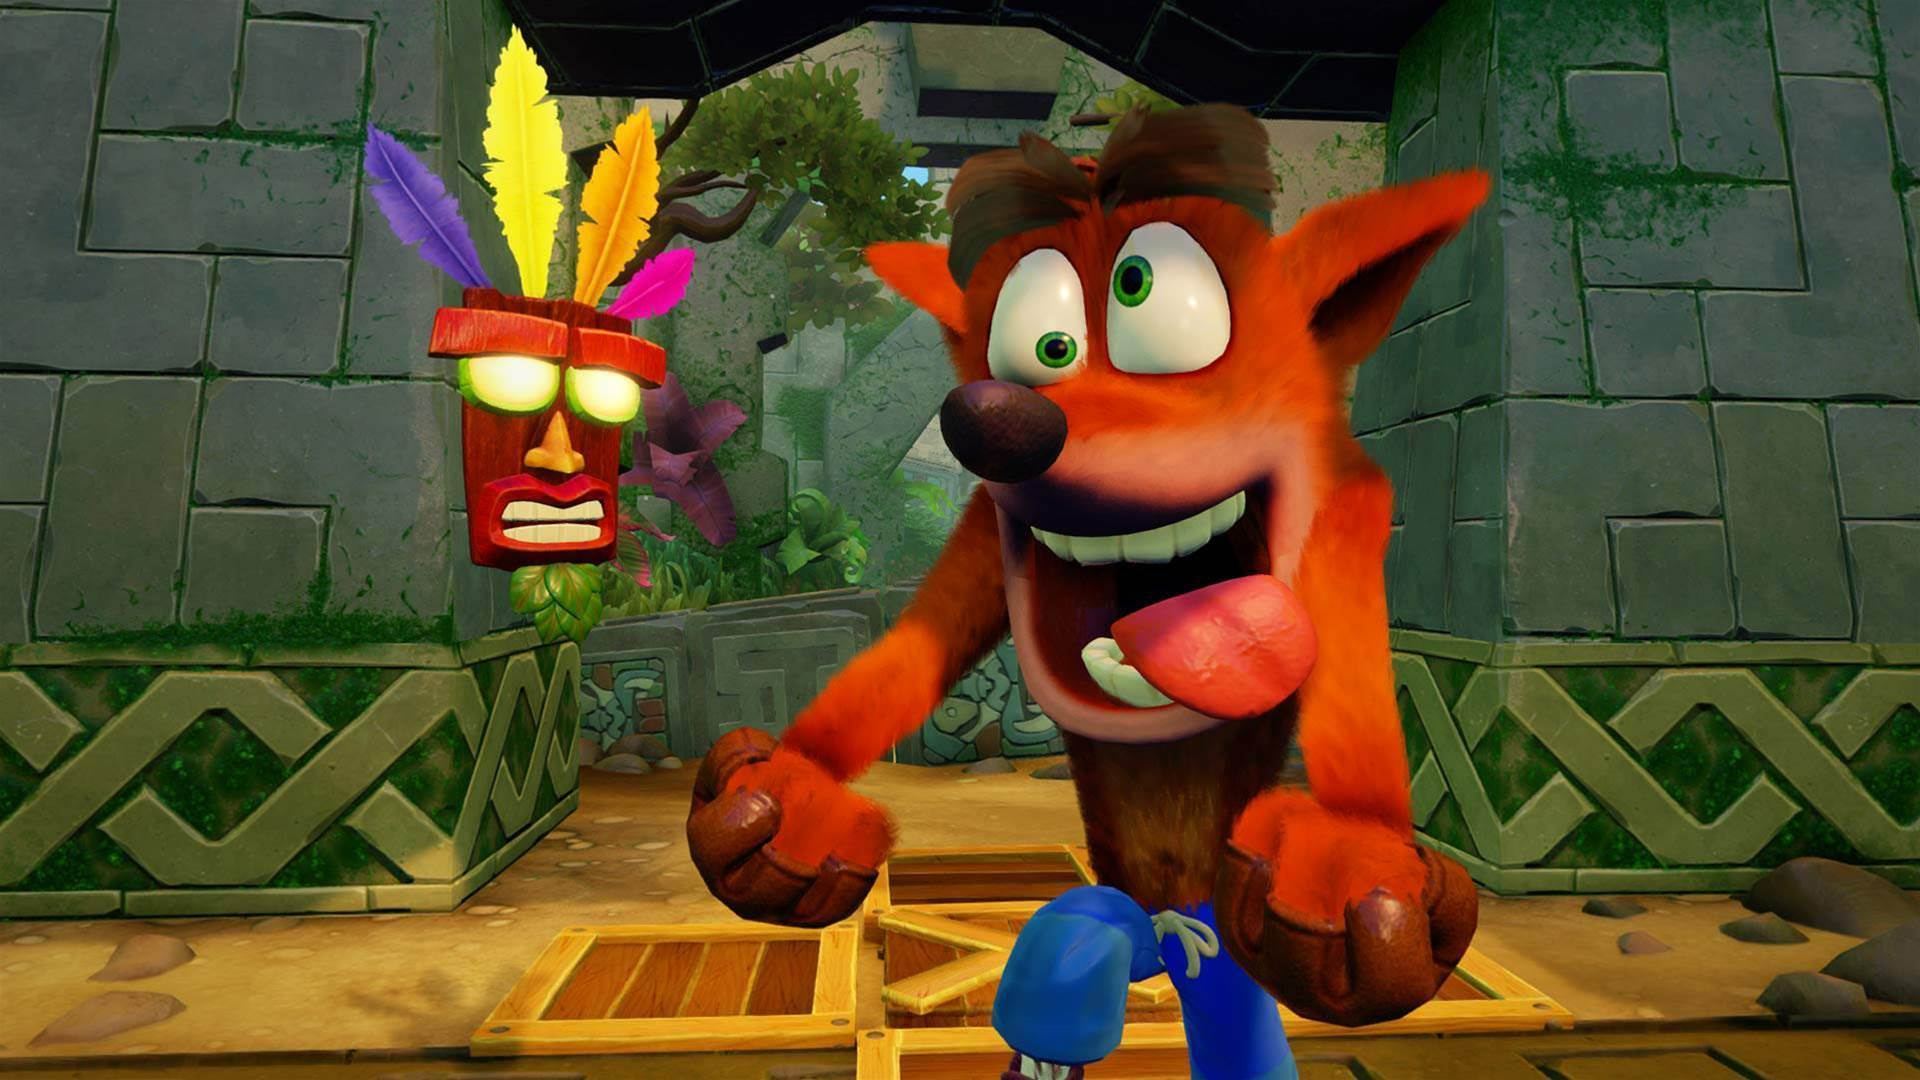 Crash sold really well in Australia, too